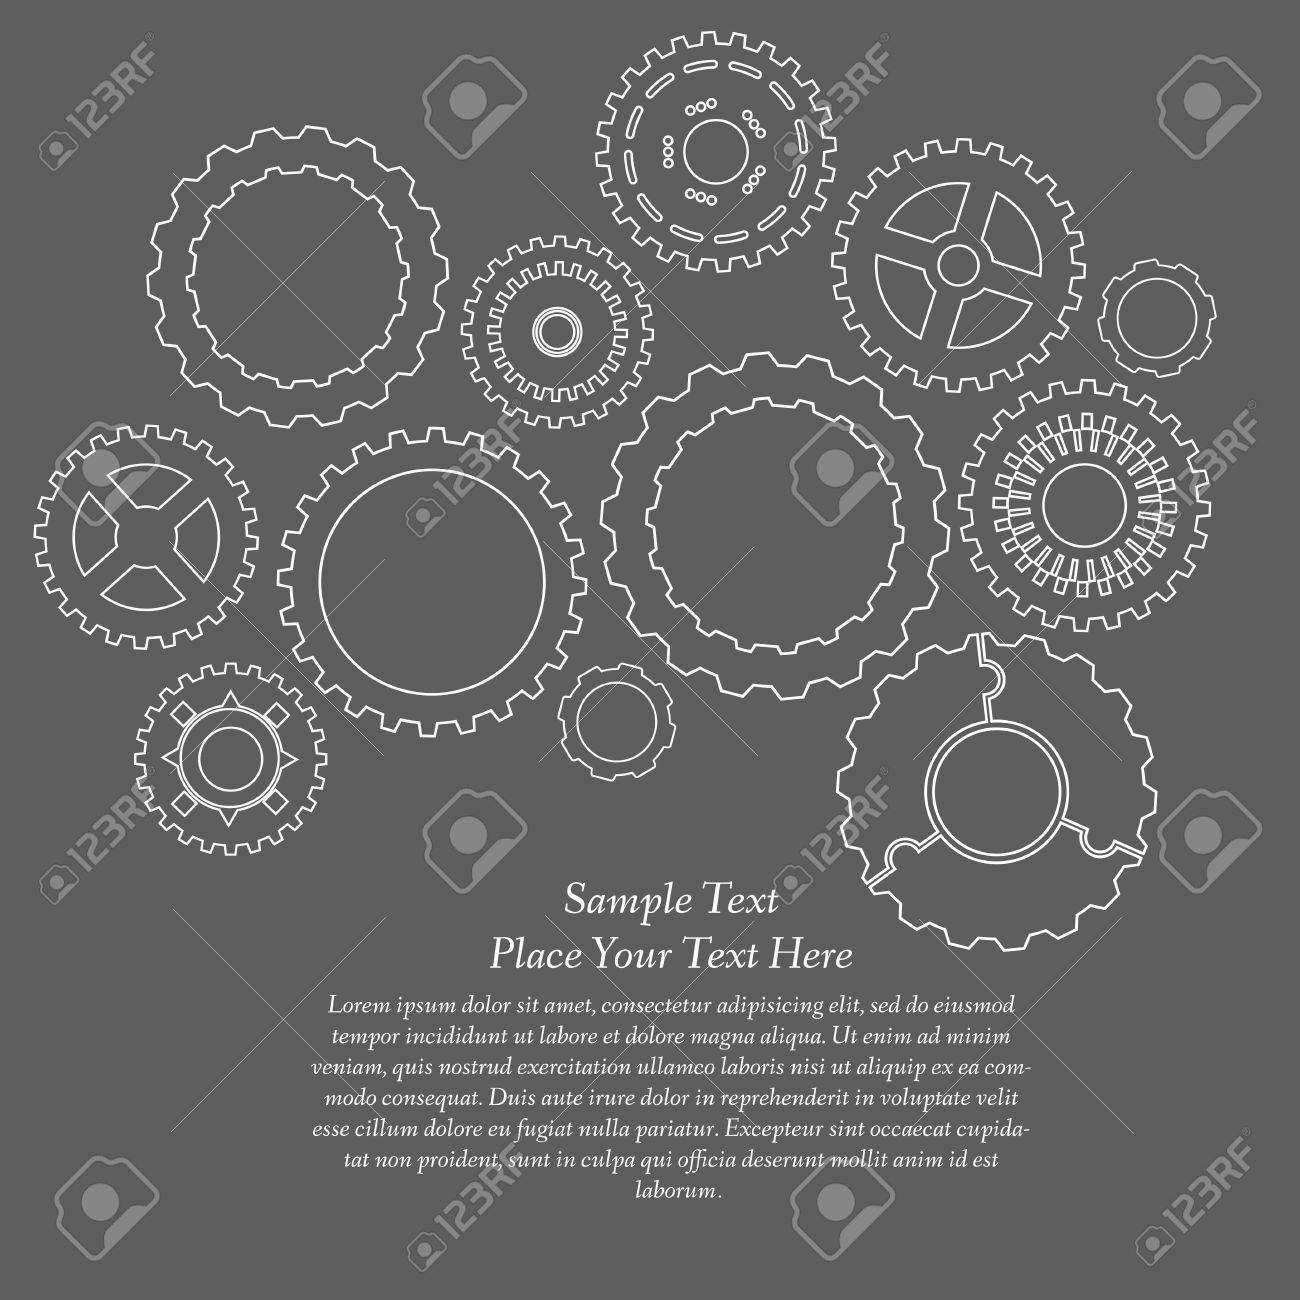 Gears cogs and pinions sketch. Abstract vector illustration. Stock Vector - 22303472